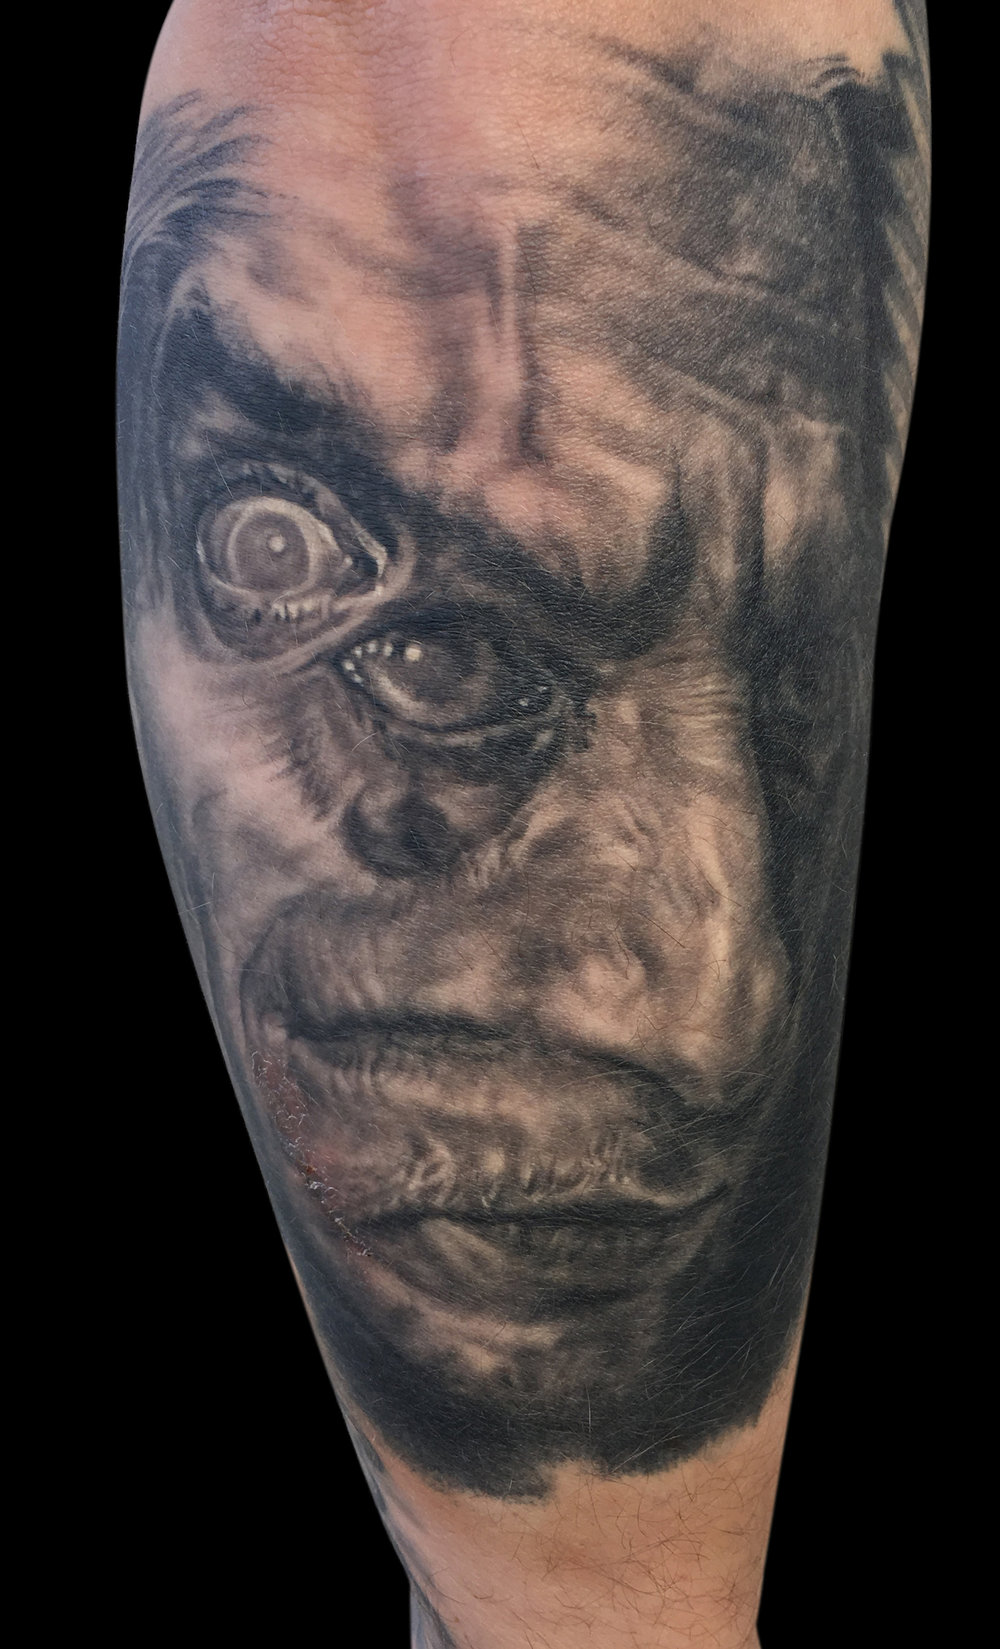 Black and Grey Alter Ego Portrait Tattoo, (healed)